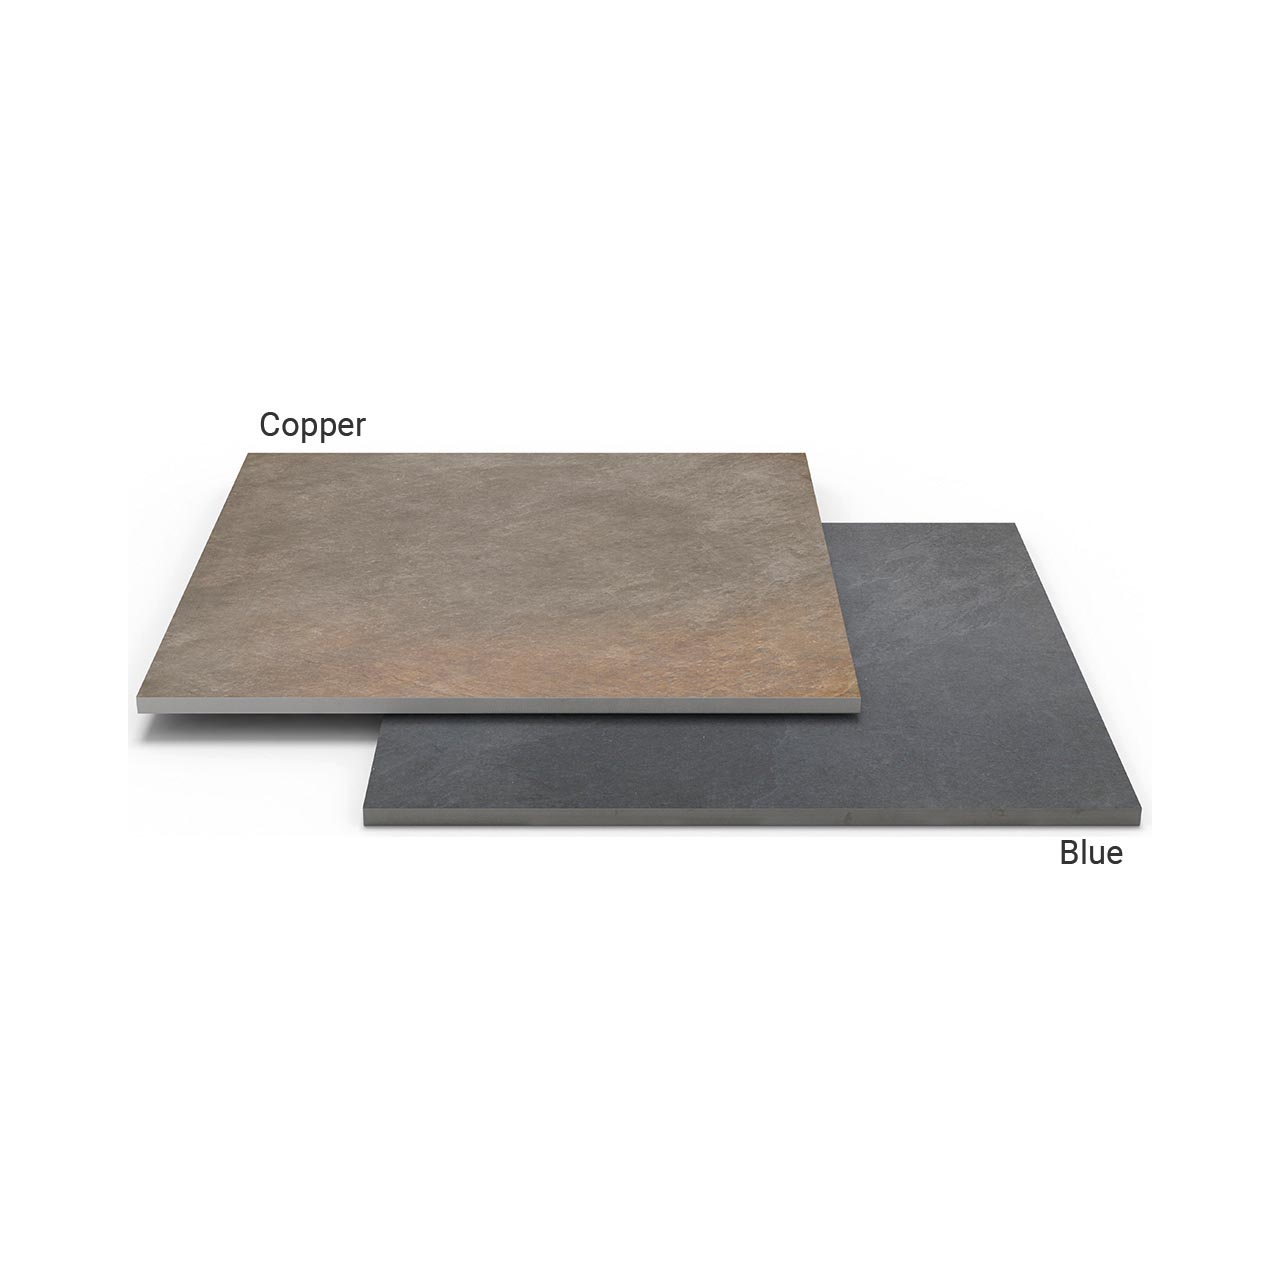 Lucent Paving 1200mm x 600mm x 20mm Copper image 0